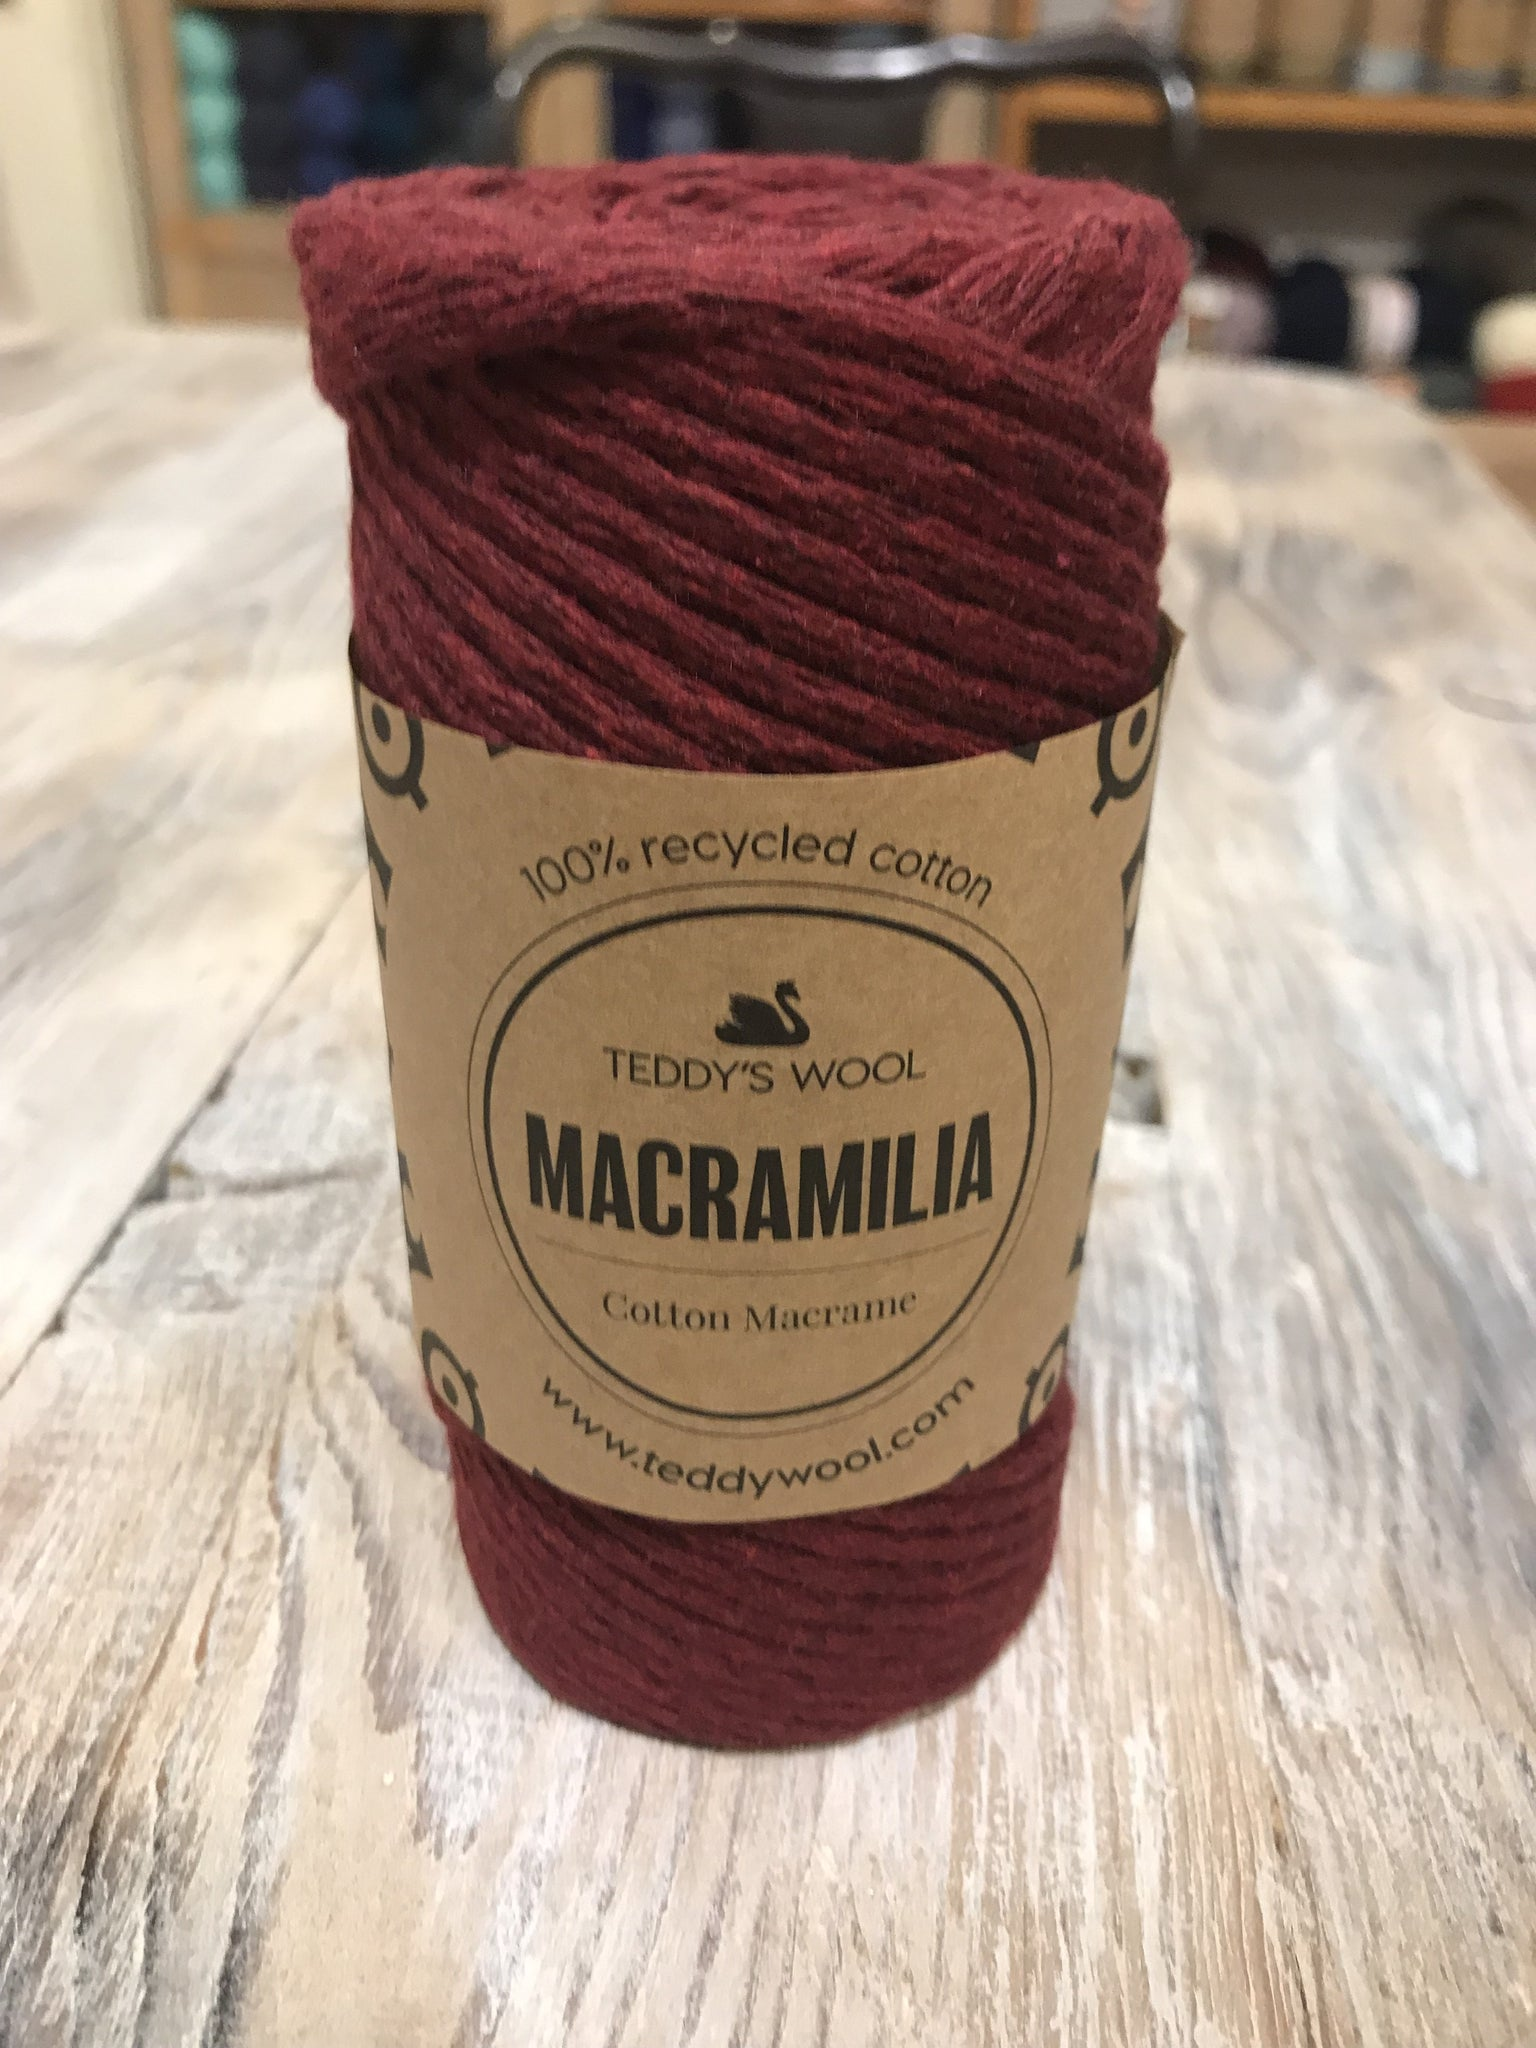 Macramilia Cotton Macrame - בורדו